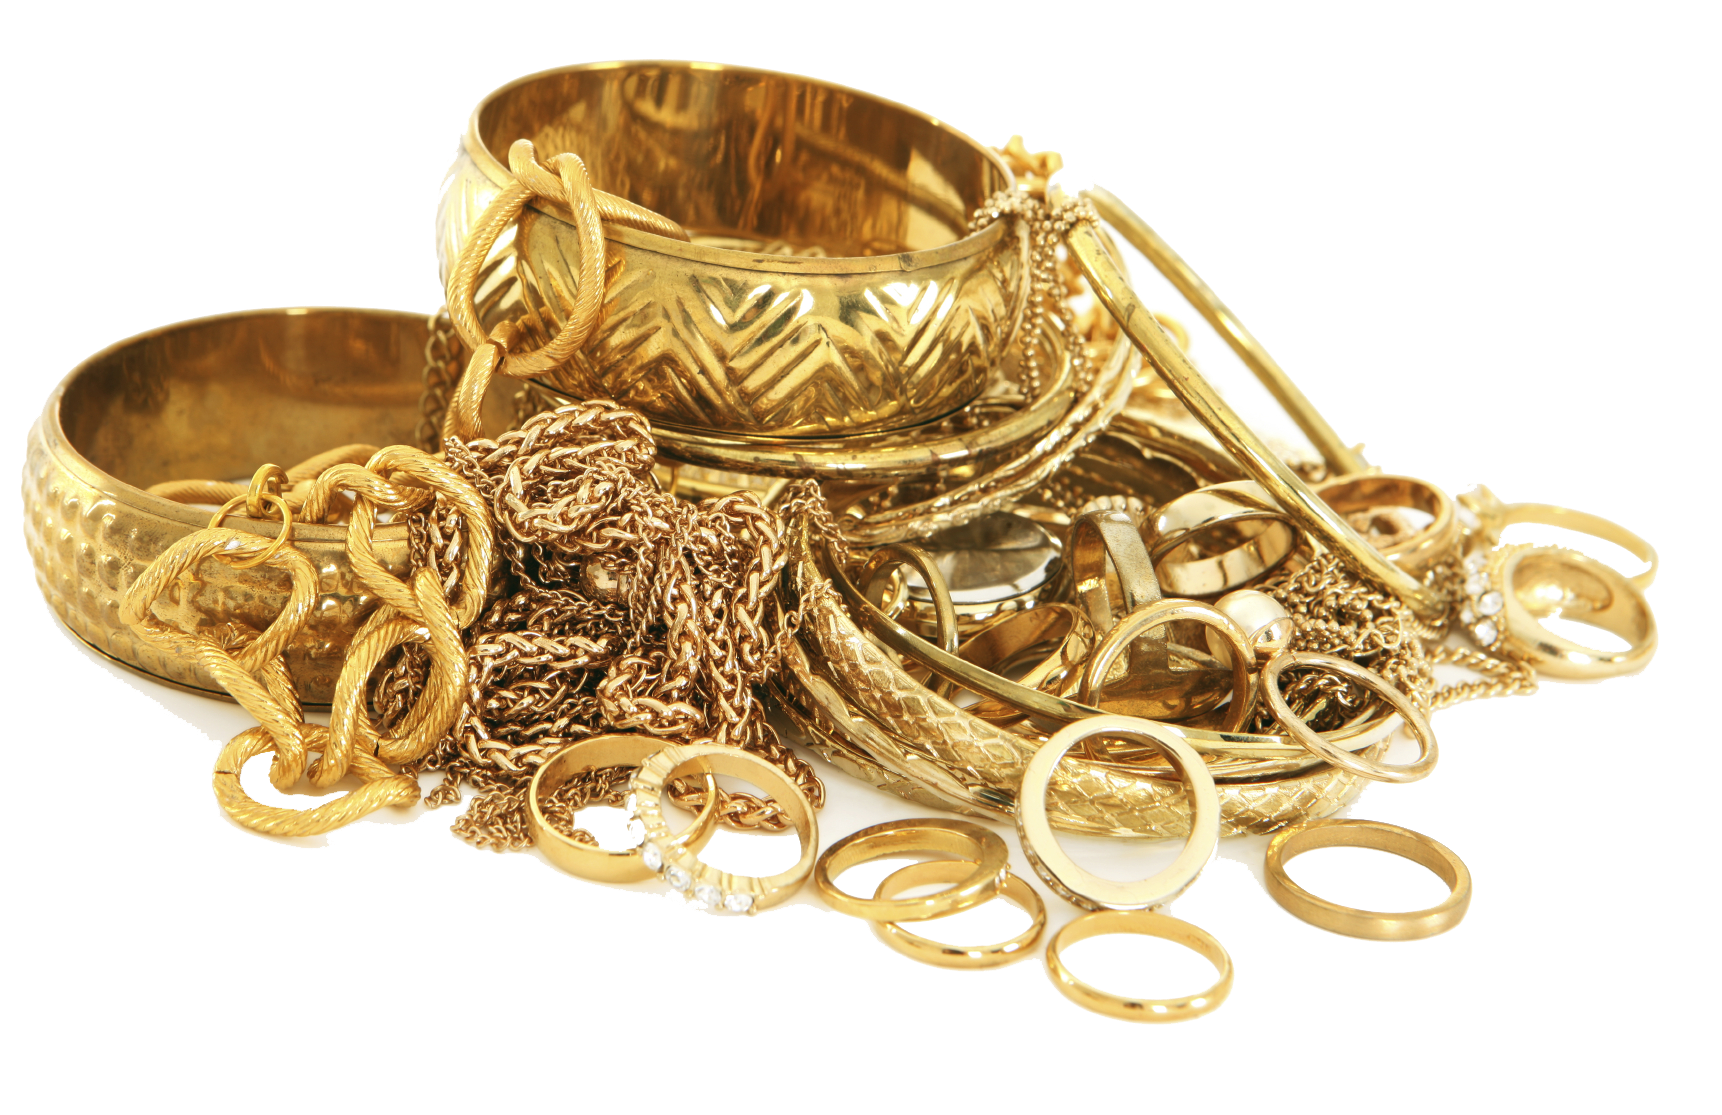 Gold Jewelry PNG Image